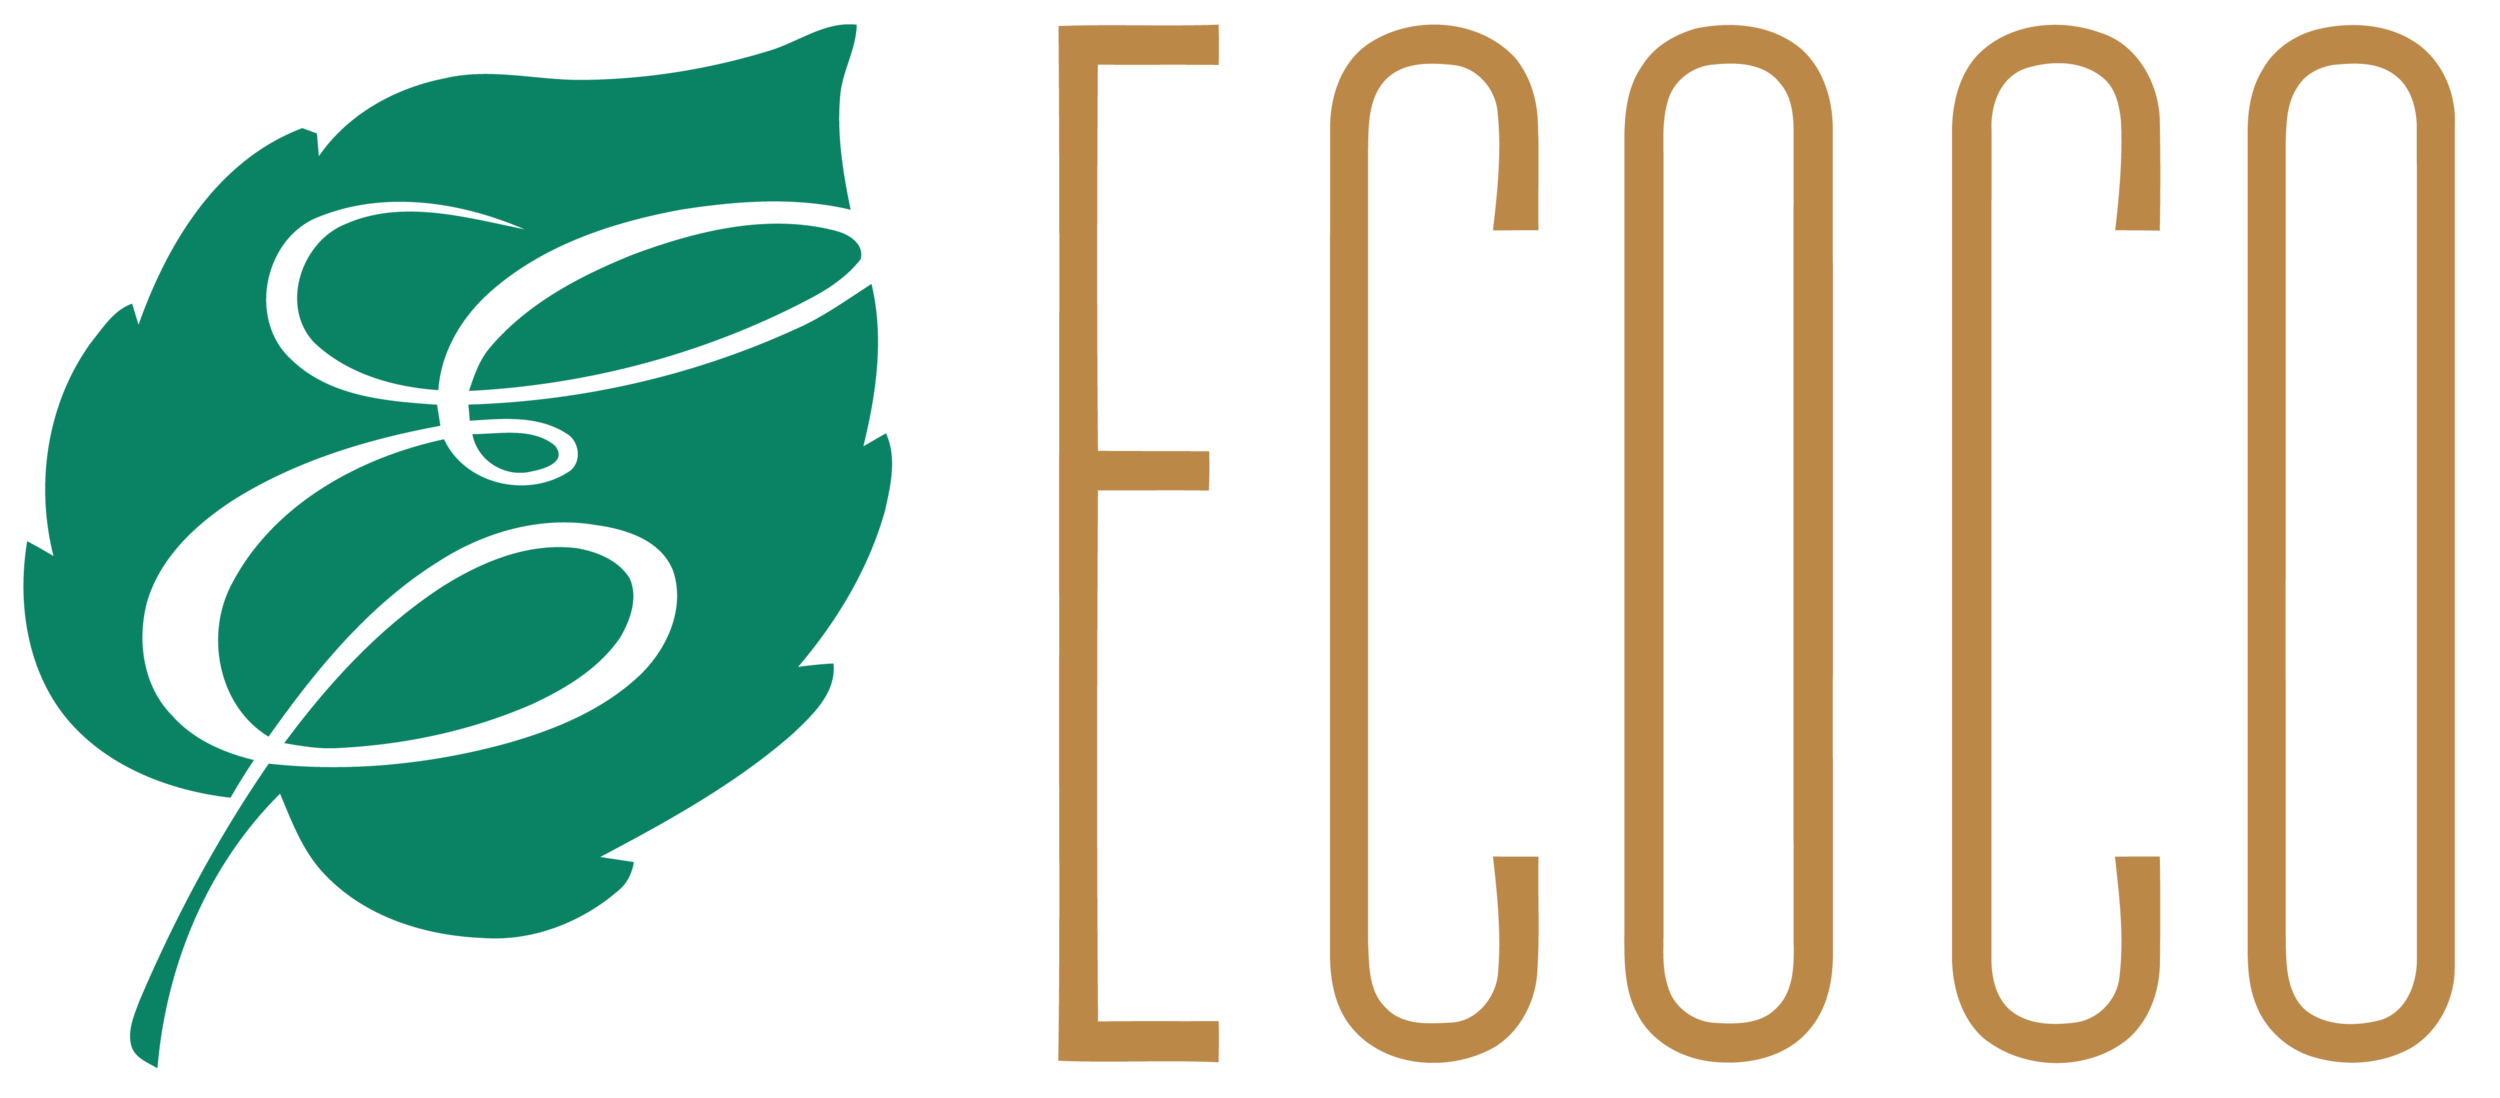 Ecoco Logo.png